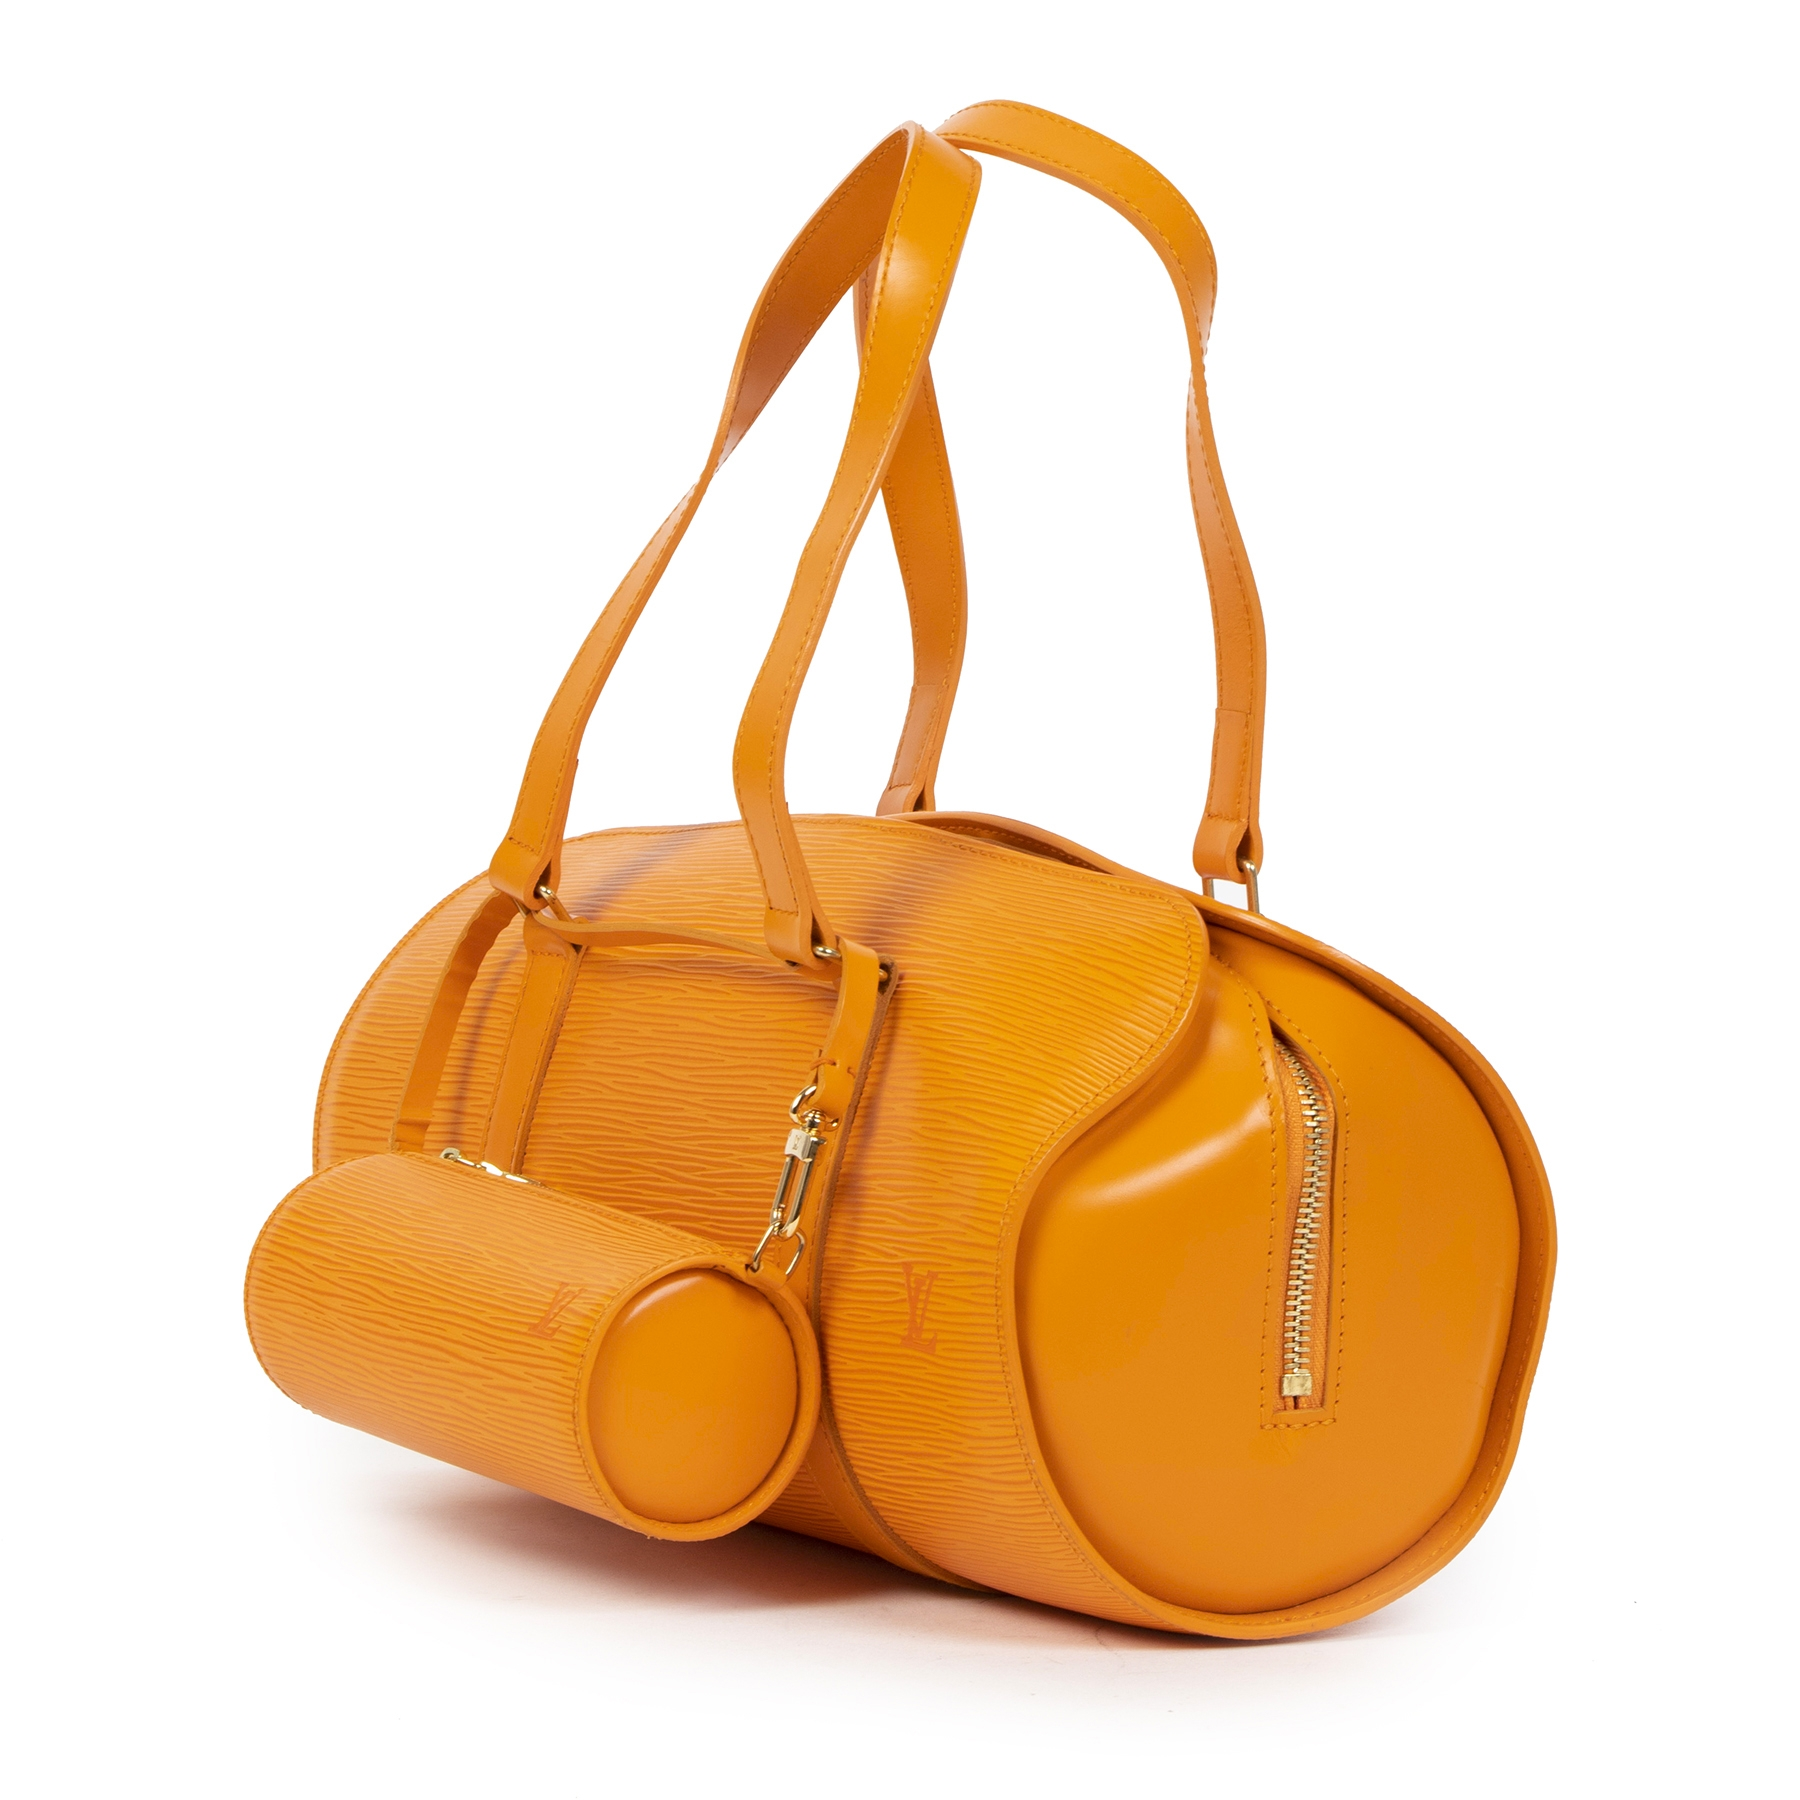 Louis Vuitton Orange Epi Leather Soufflot Bag